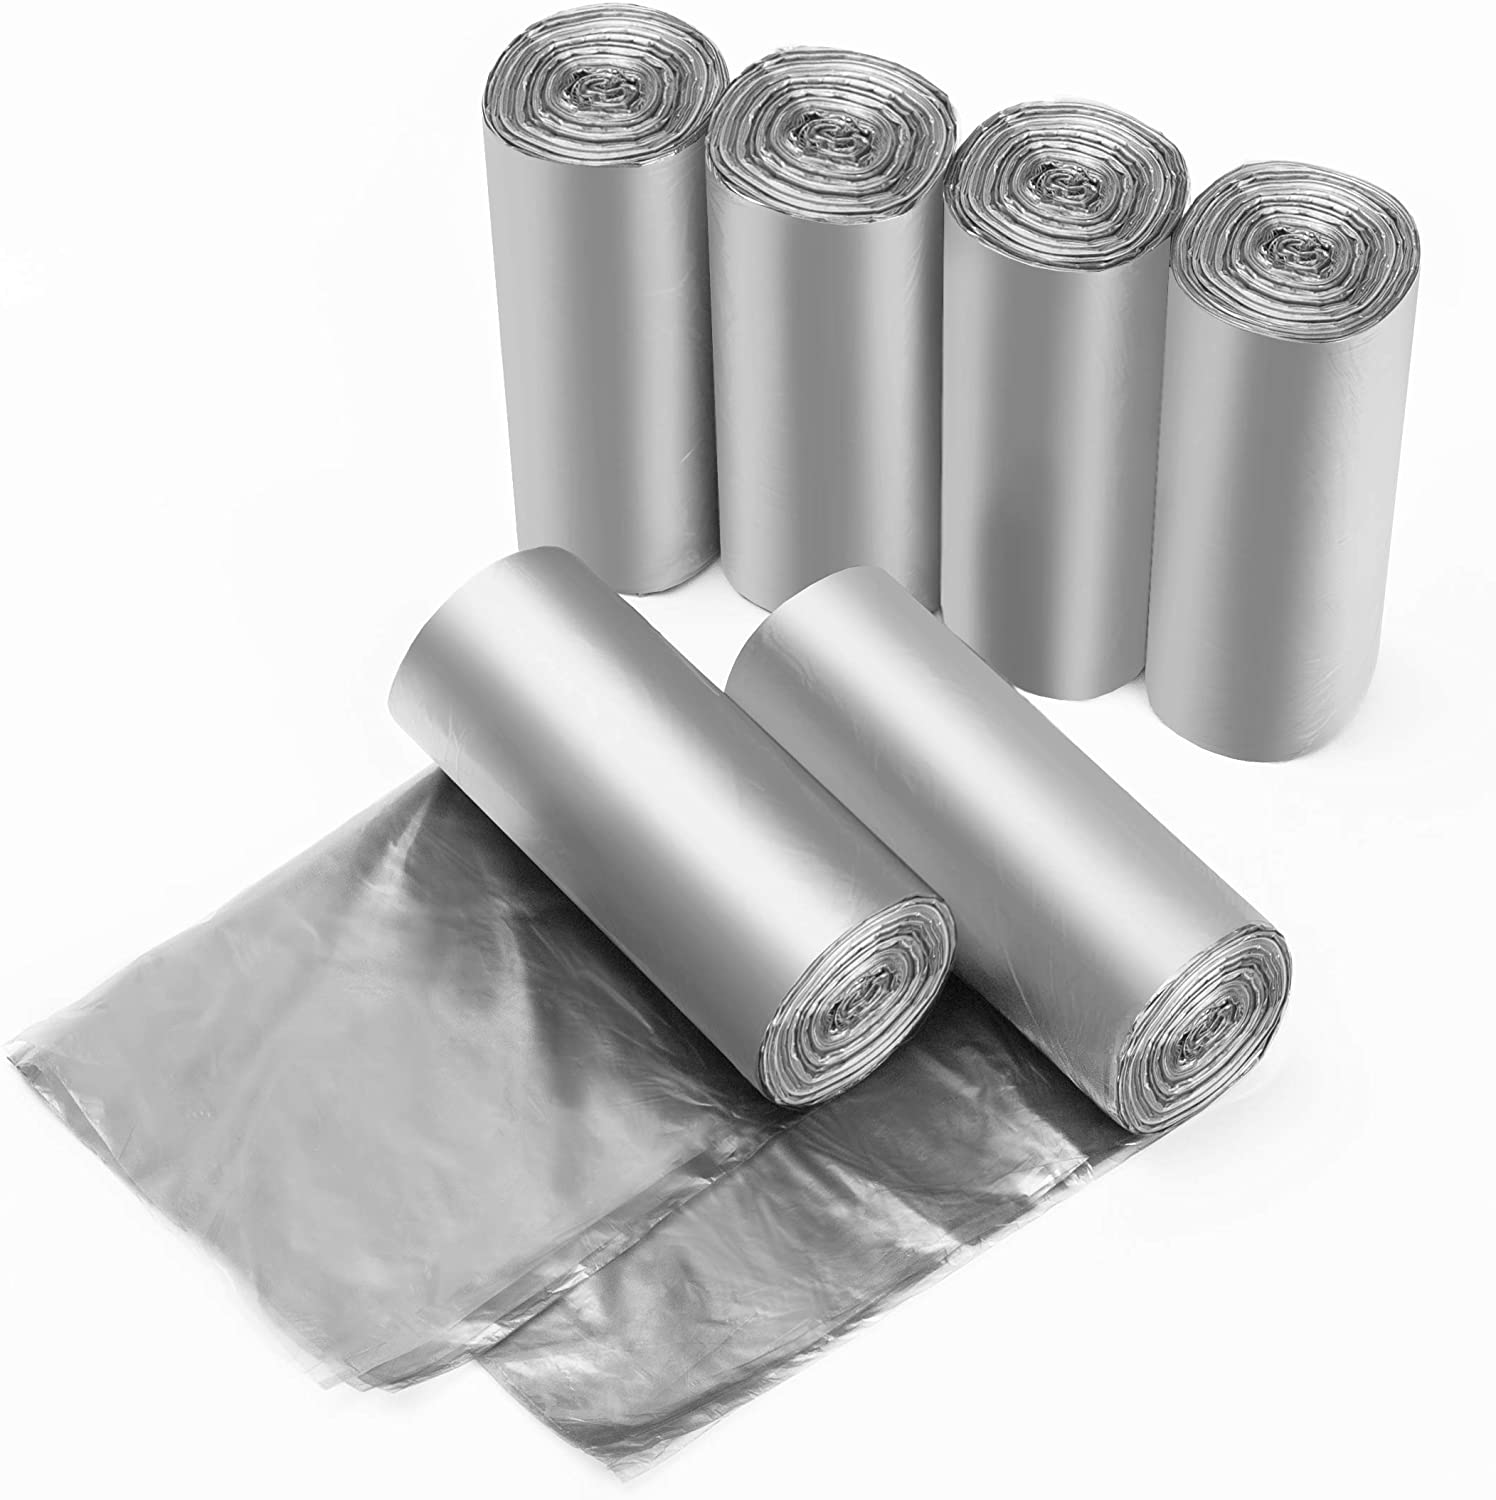 Grey Plastic Trash Bags 1.2 Gallon, Garbage Bags 240 Counts, Extra Strong Rubbish Bags 5 Liter for Home, Office, Kitchen/6 Rolls